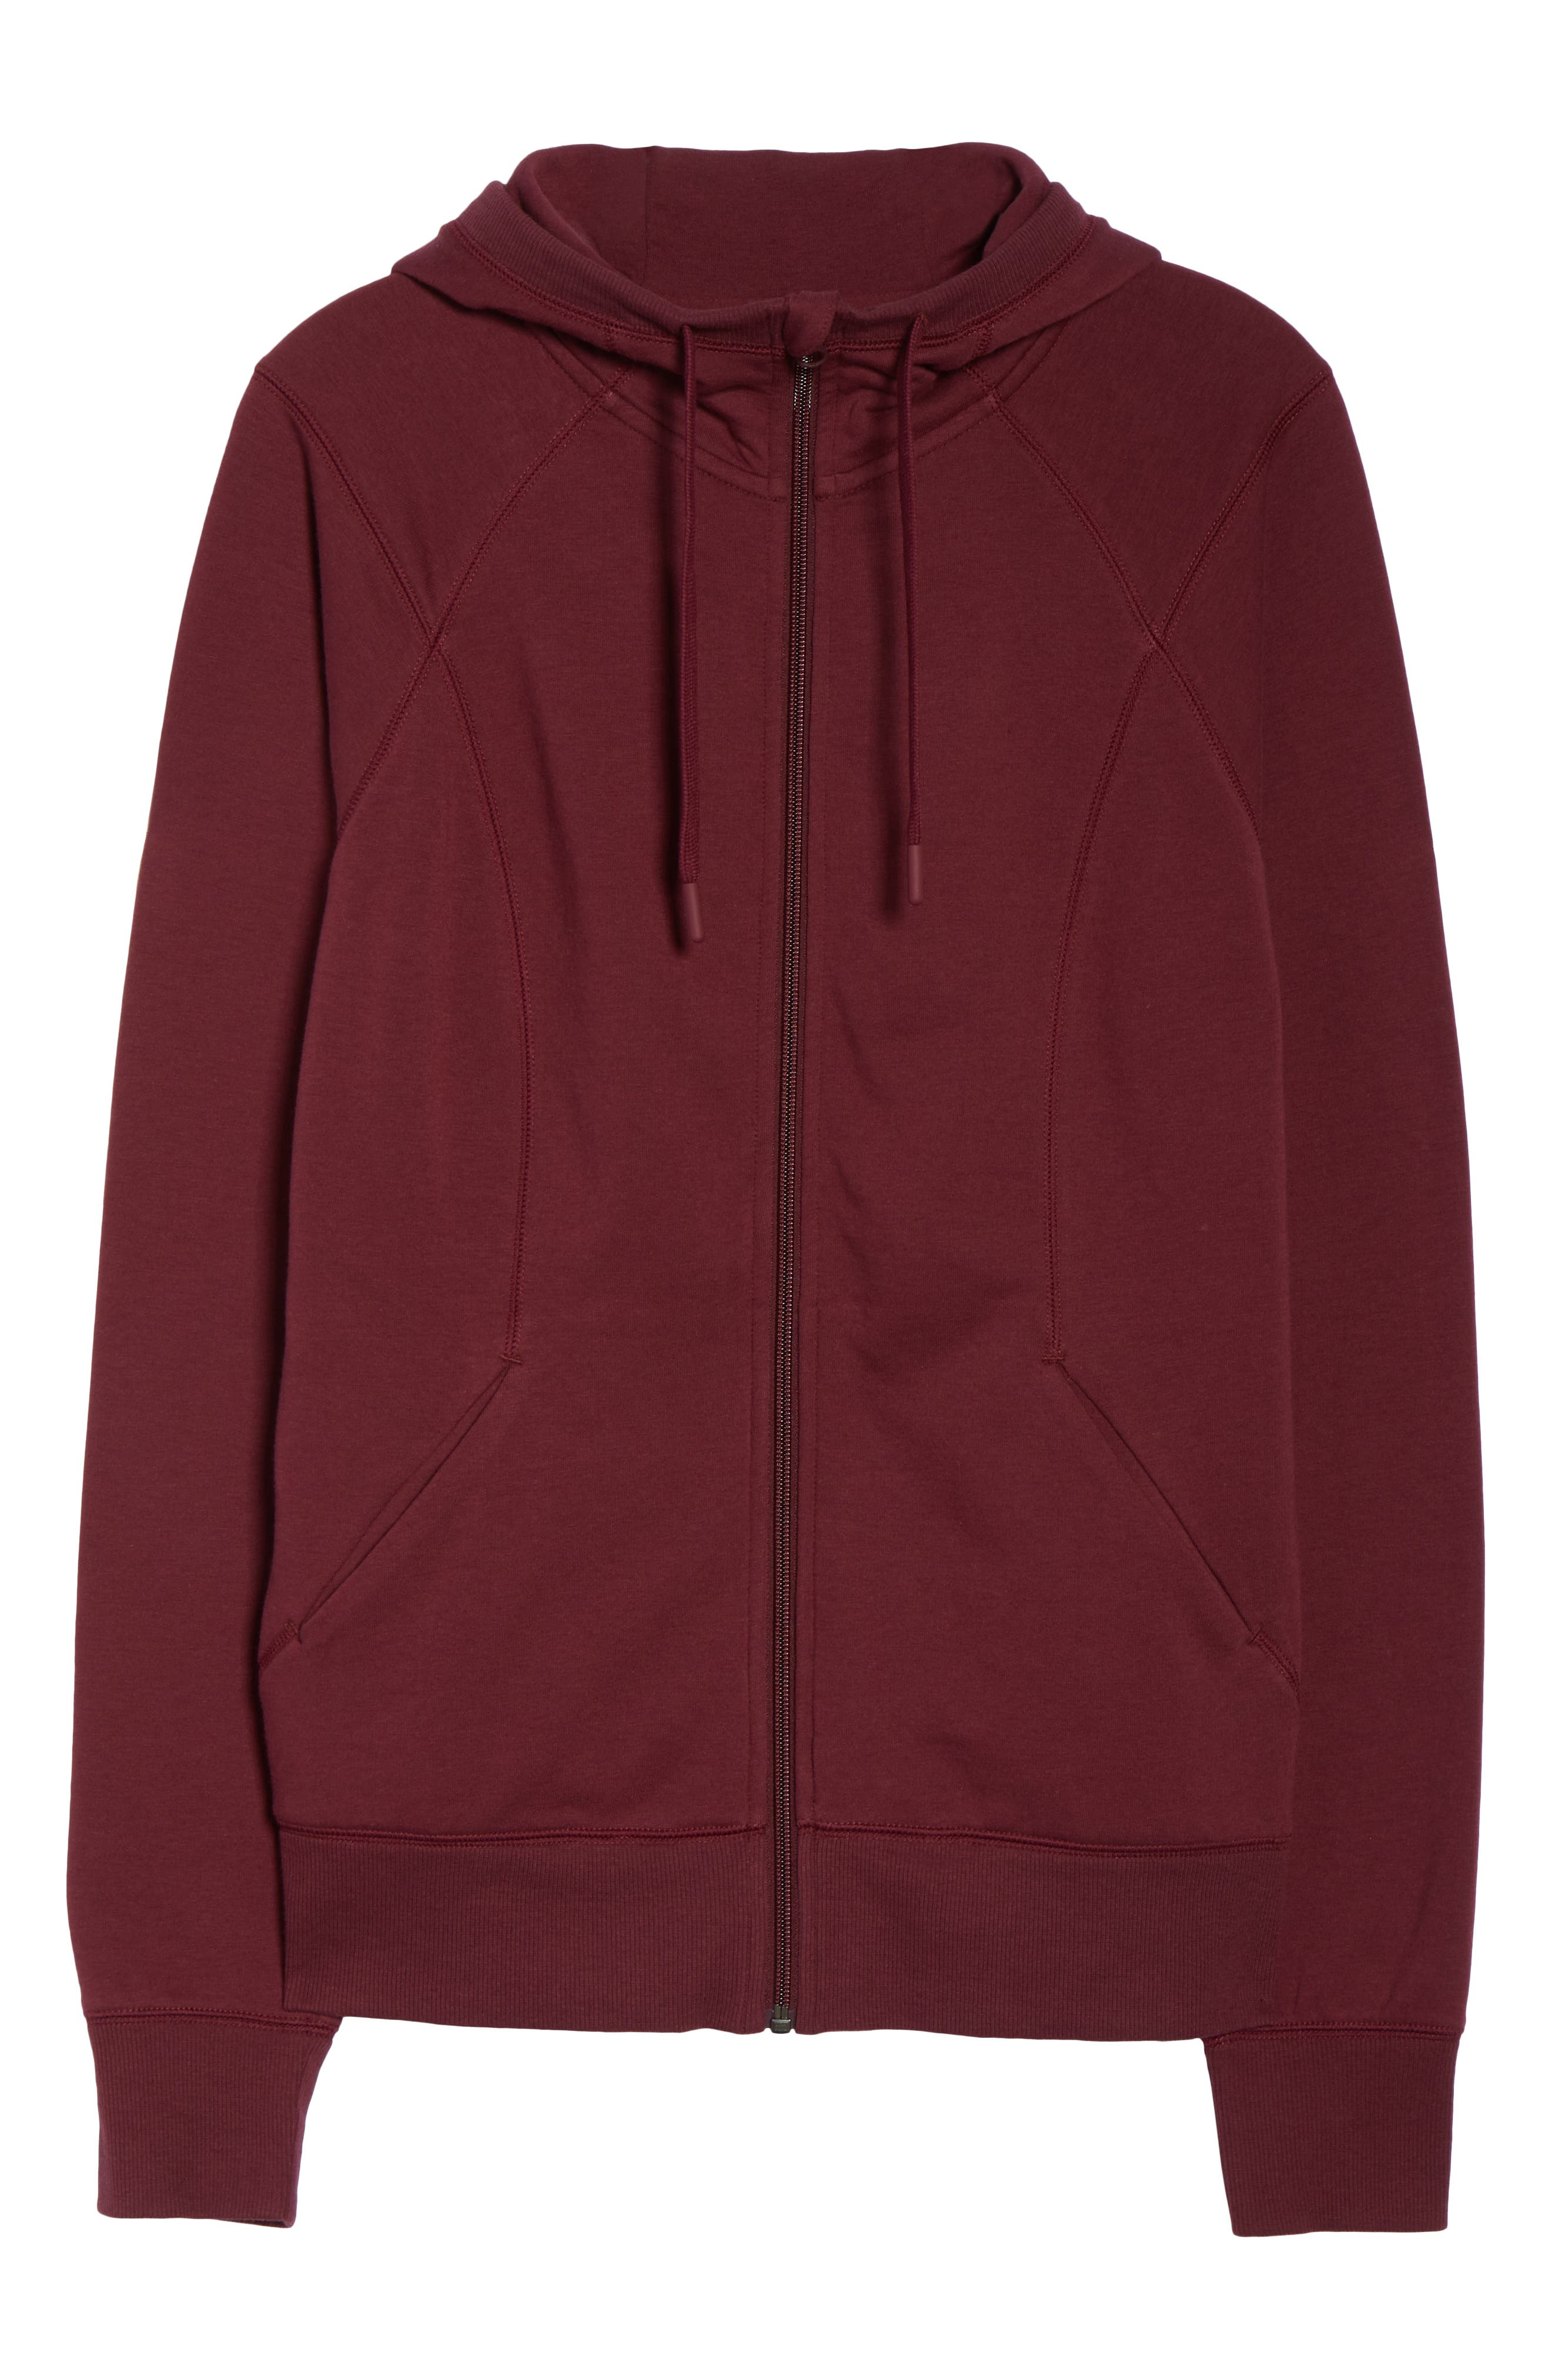 Outta Town Zip Hoodie,                             Alternate thumbnail 7, color,                             RED TANNIN